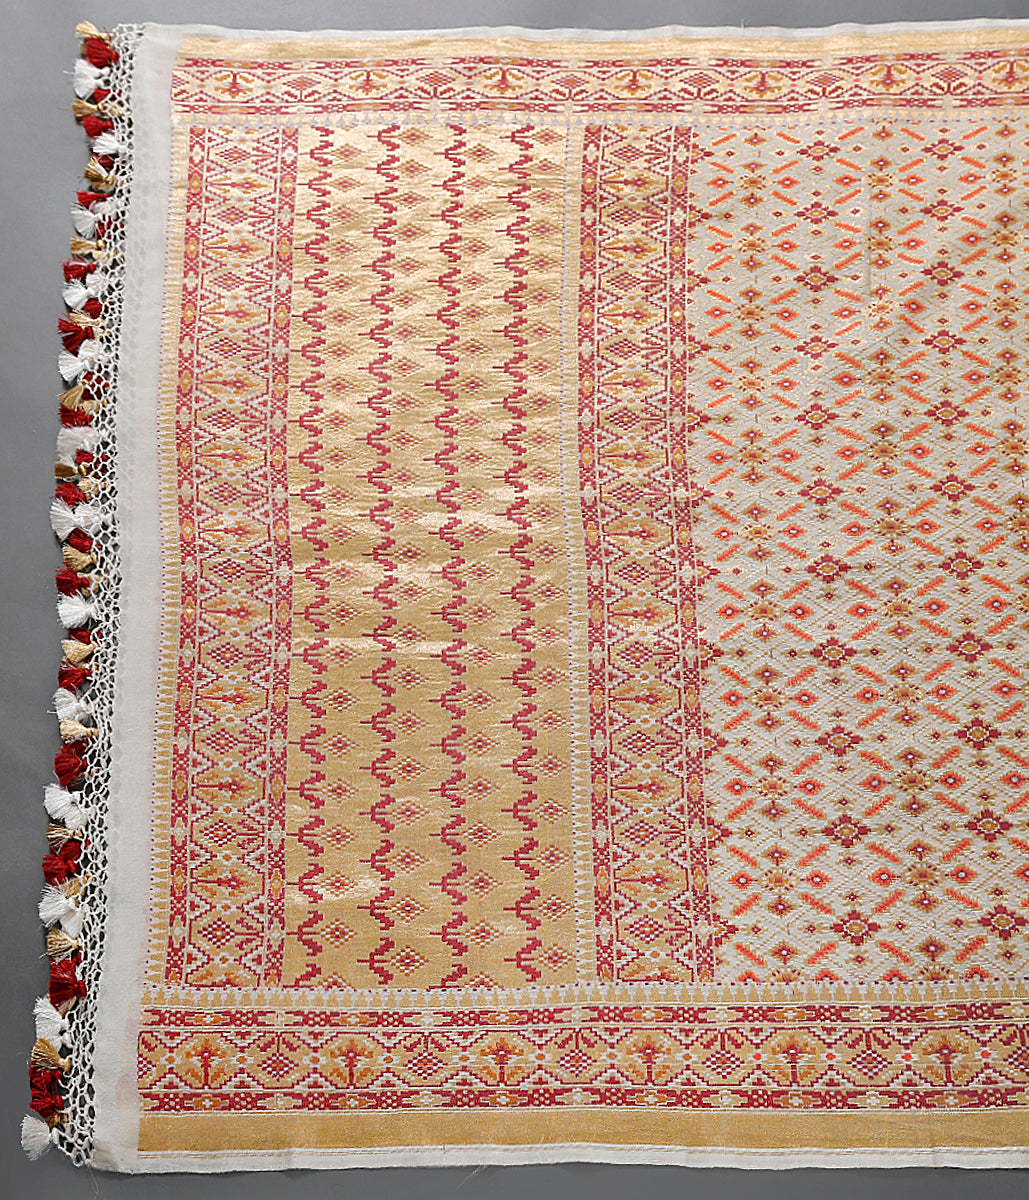 Handwoven banarasi patola dupatta woven in tusser with georgette